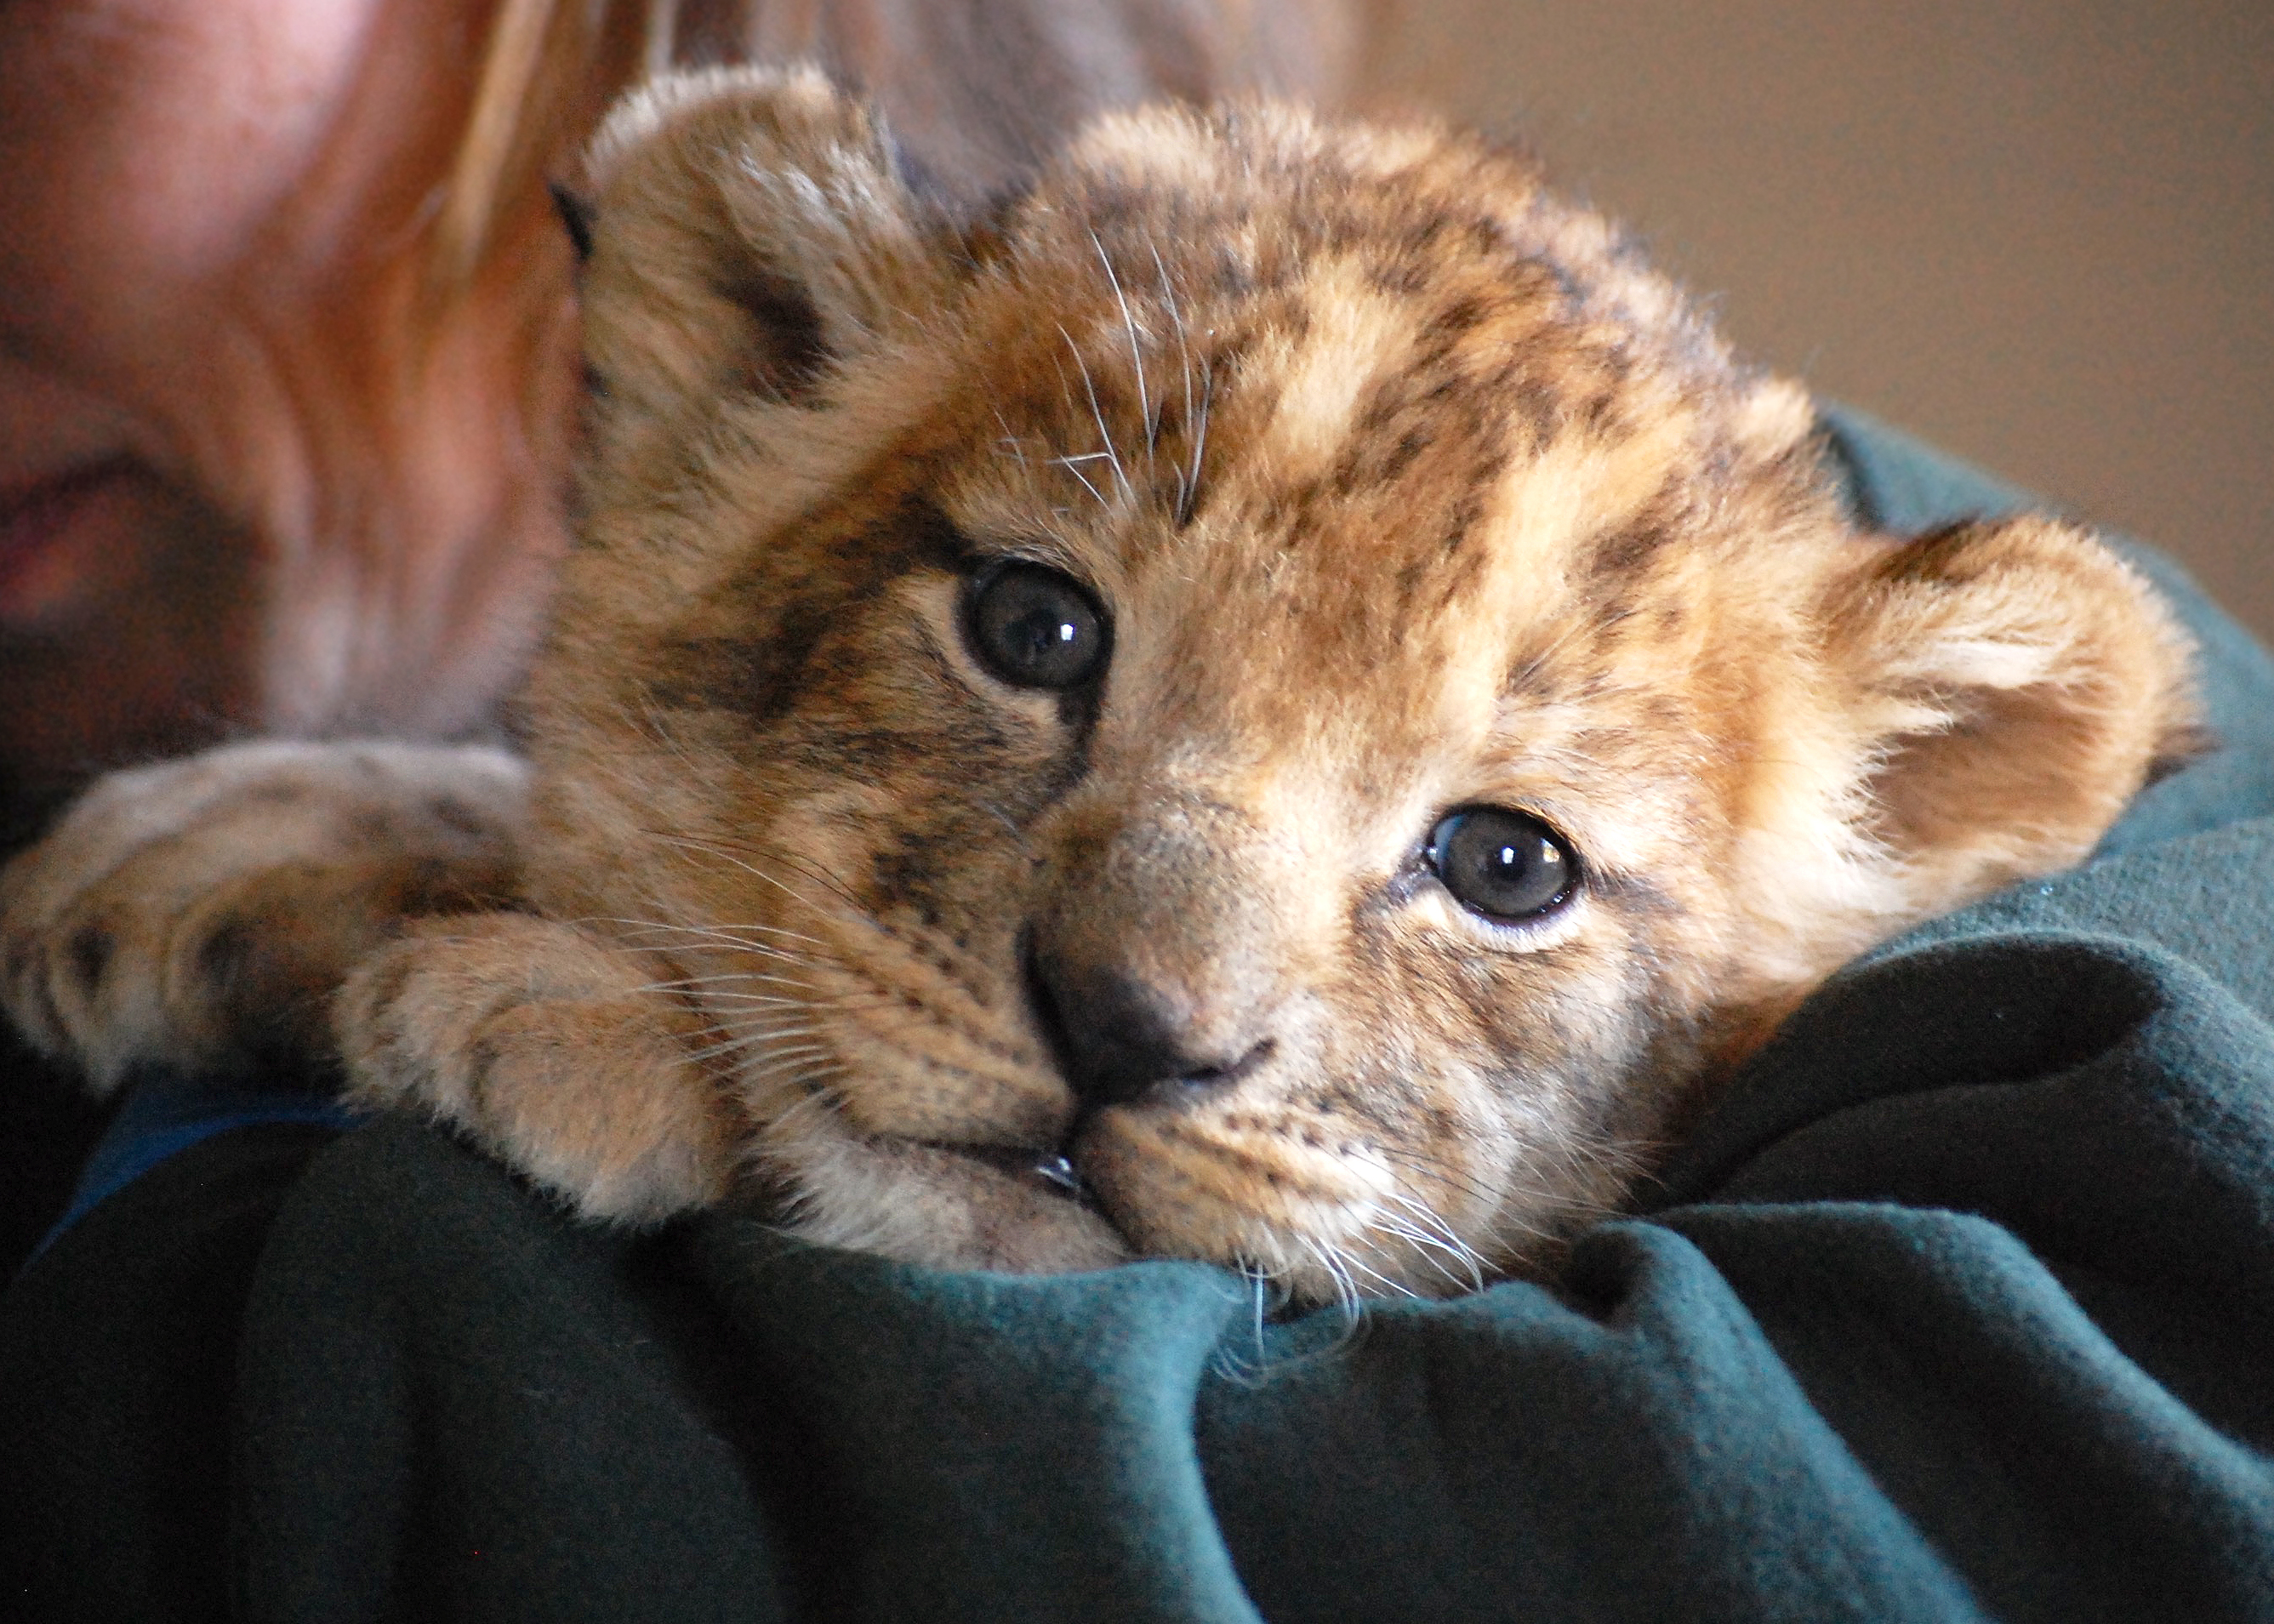 no lion the zoo has a new cub virginia zoo in norfolk